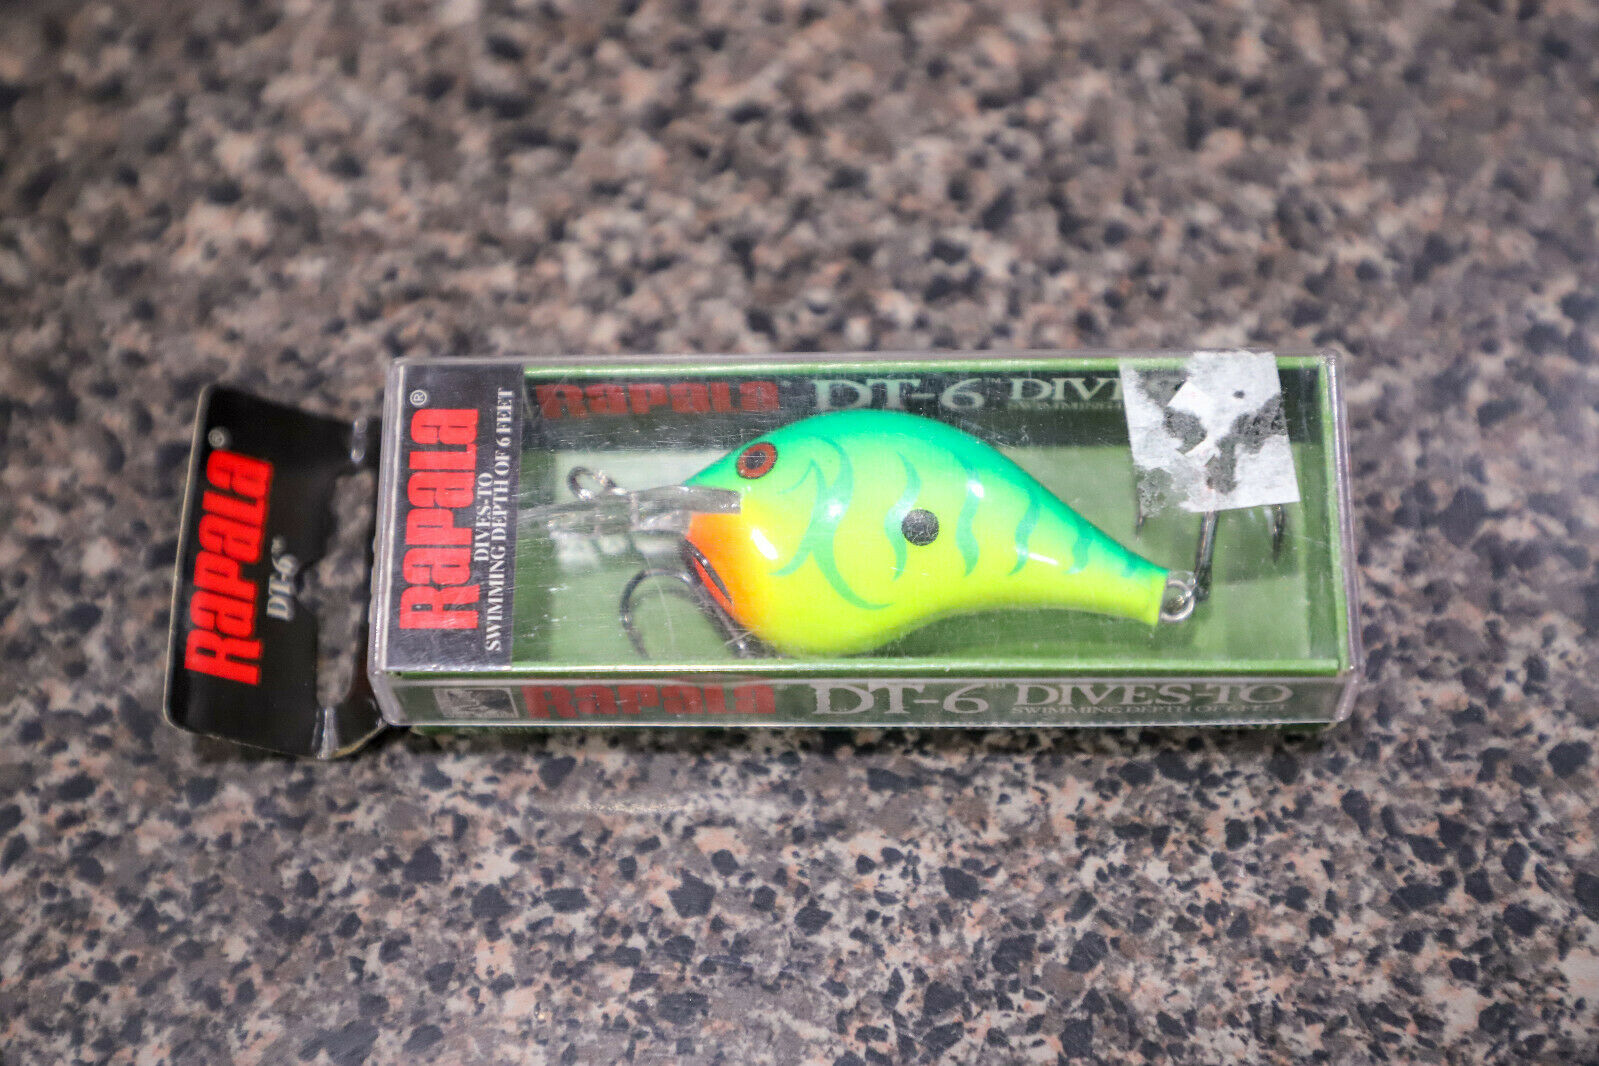 Rapala DivesTo DT6 GTR verde Tiger Fishing Lure Crankbait Very Rare Coloree DT6